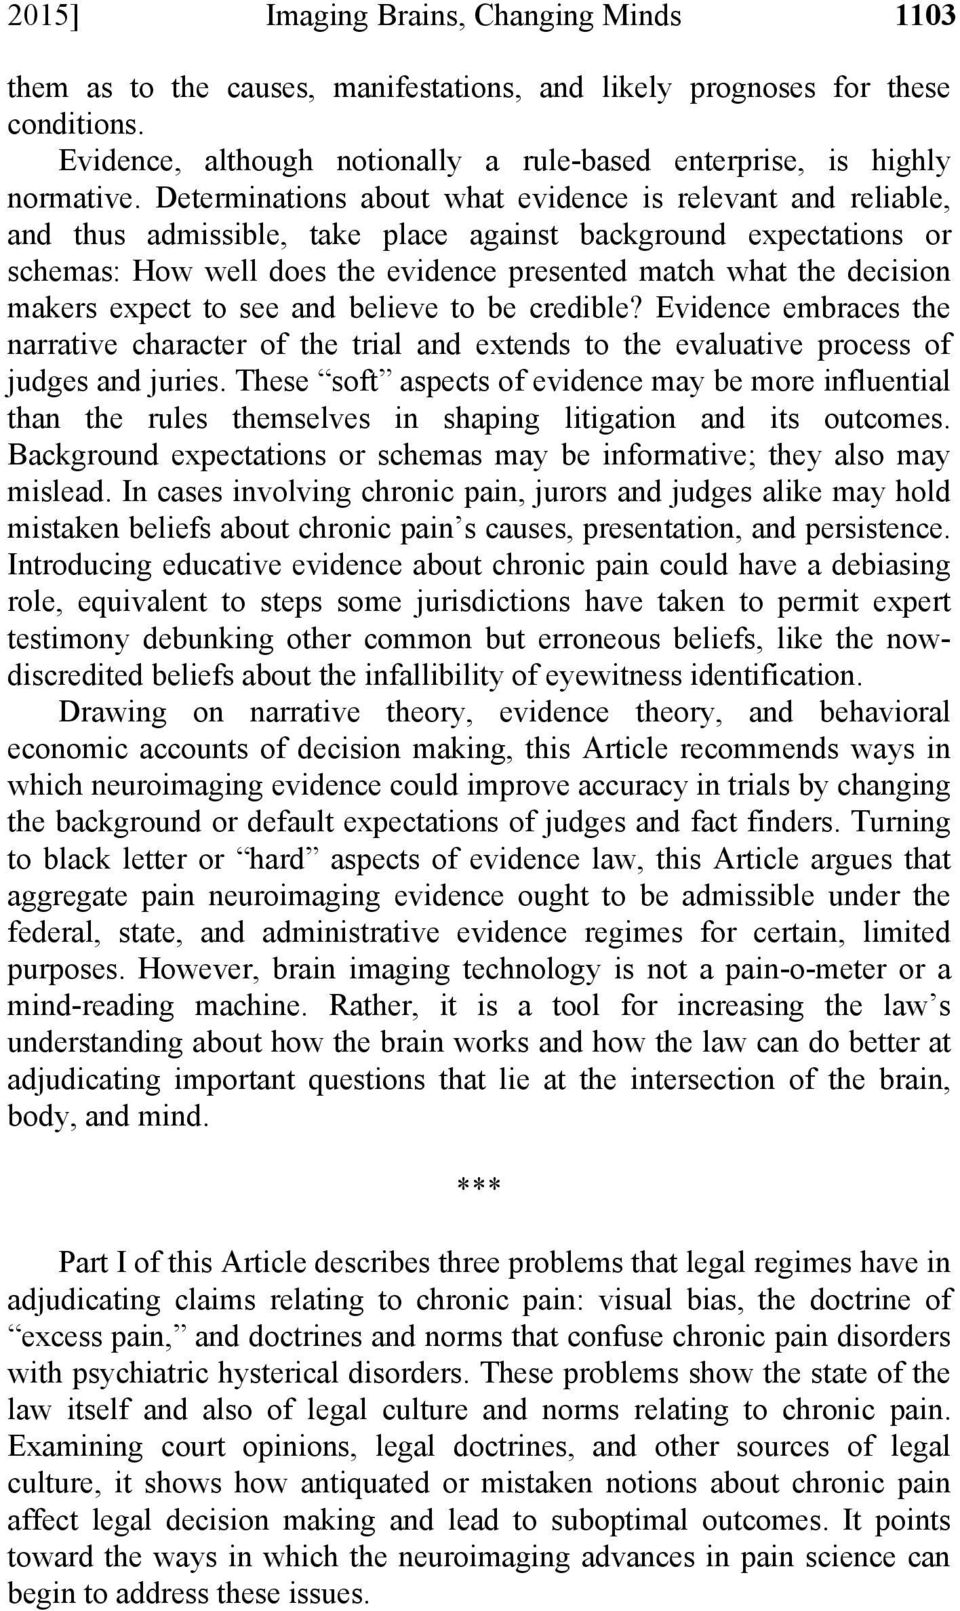 makers expect to see and believe to be credible? Evidence embraces the narrative character of the trial and extends to the evaluative process of judges and juries.